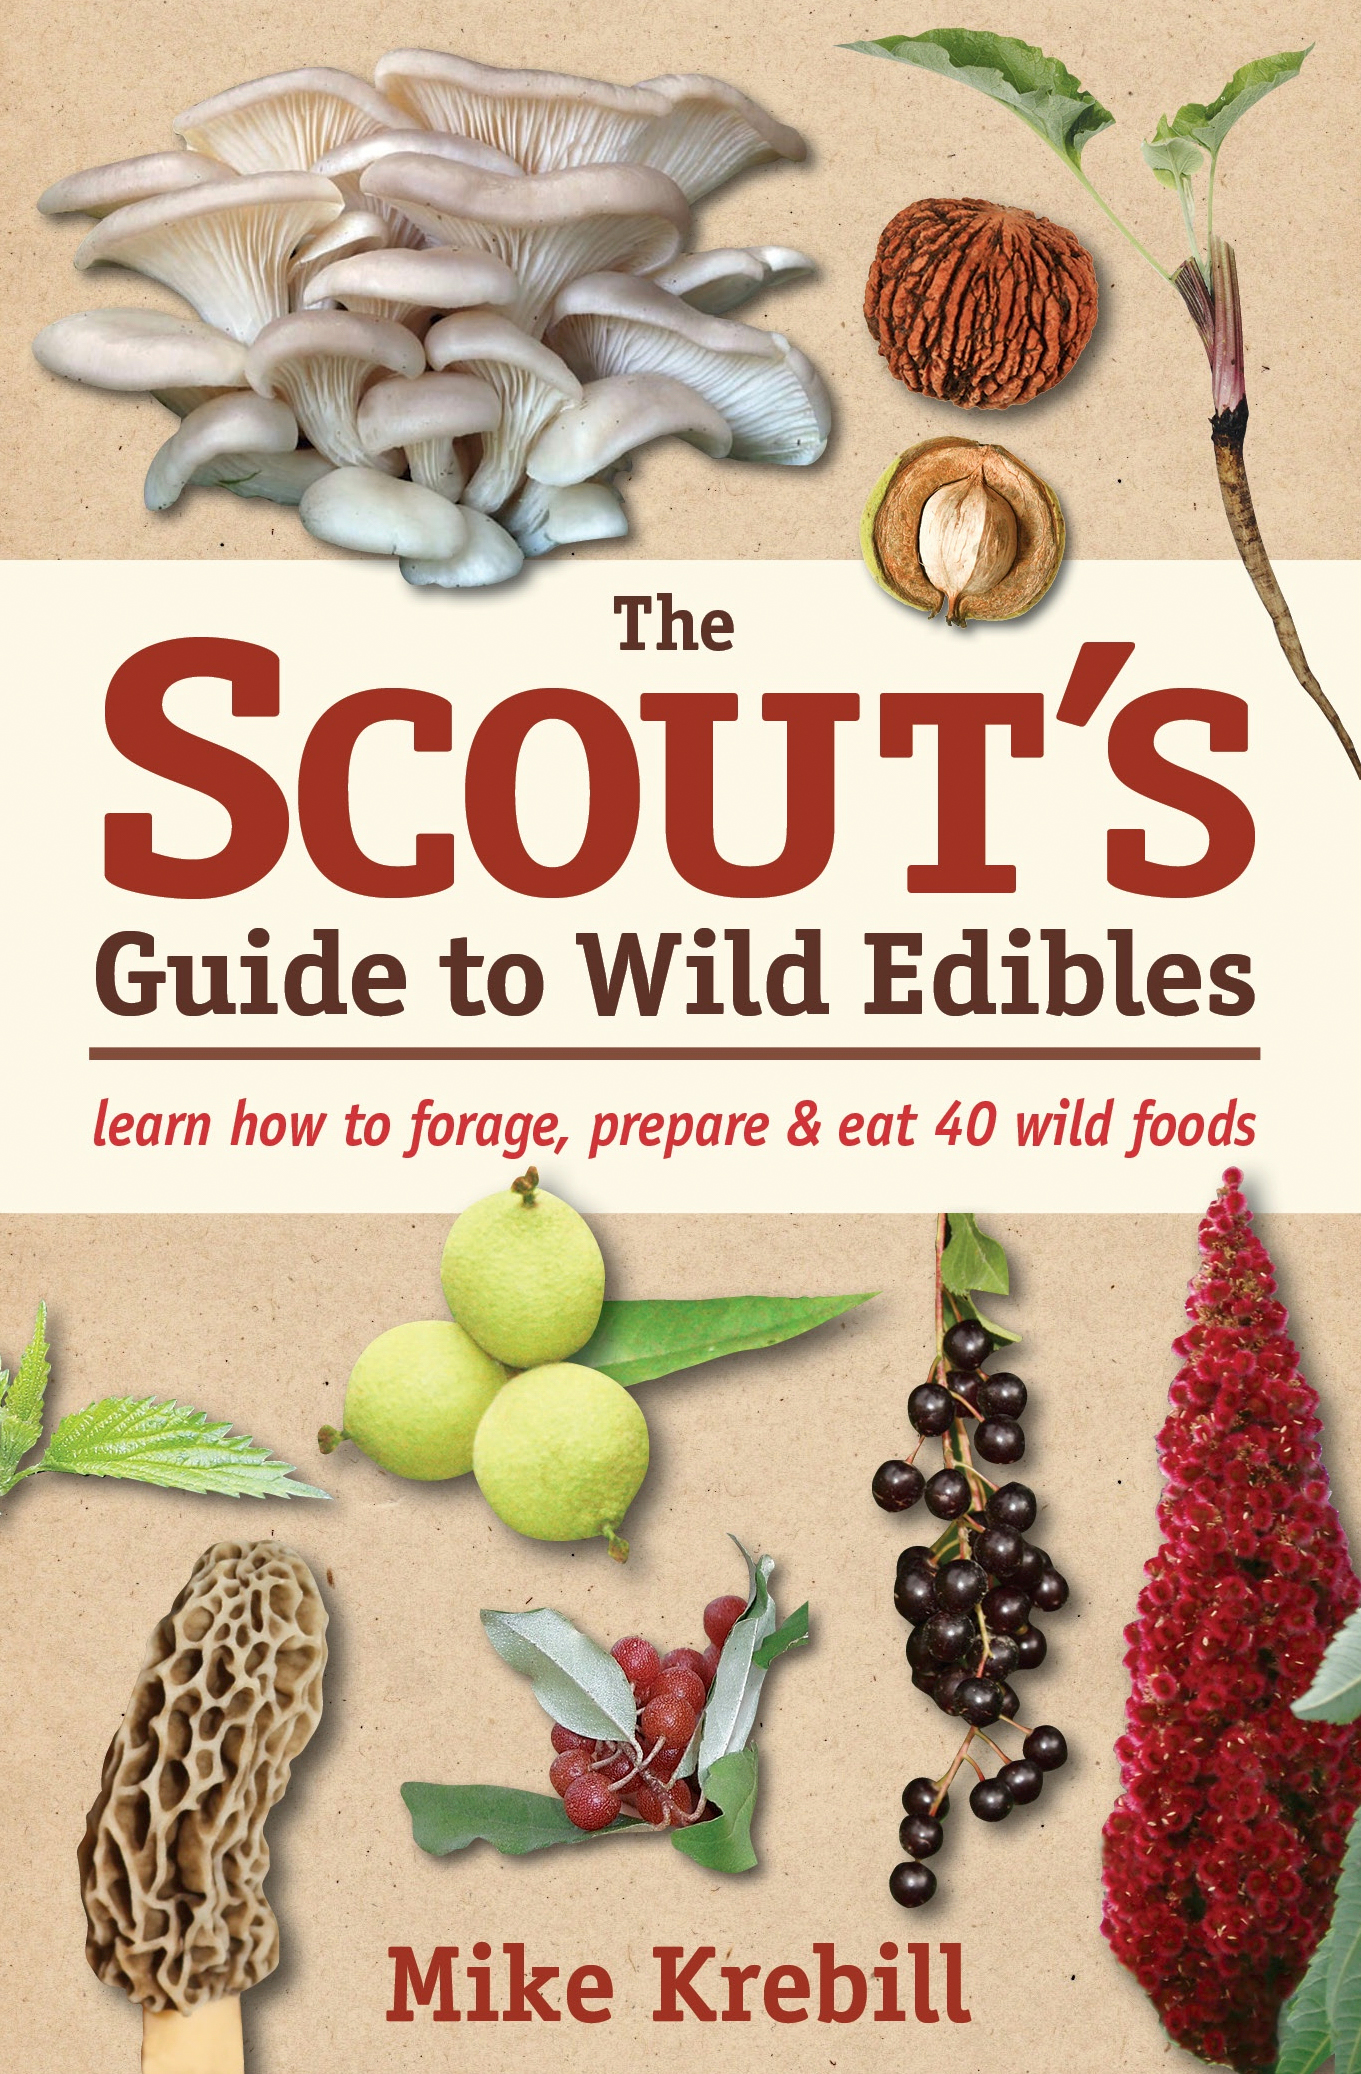 The Scout's Guide to Wild Edibles: a Book Review